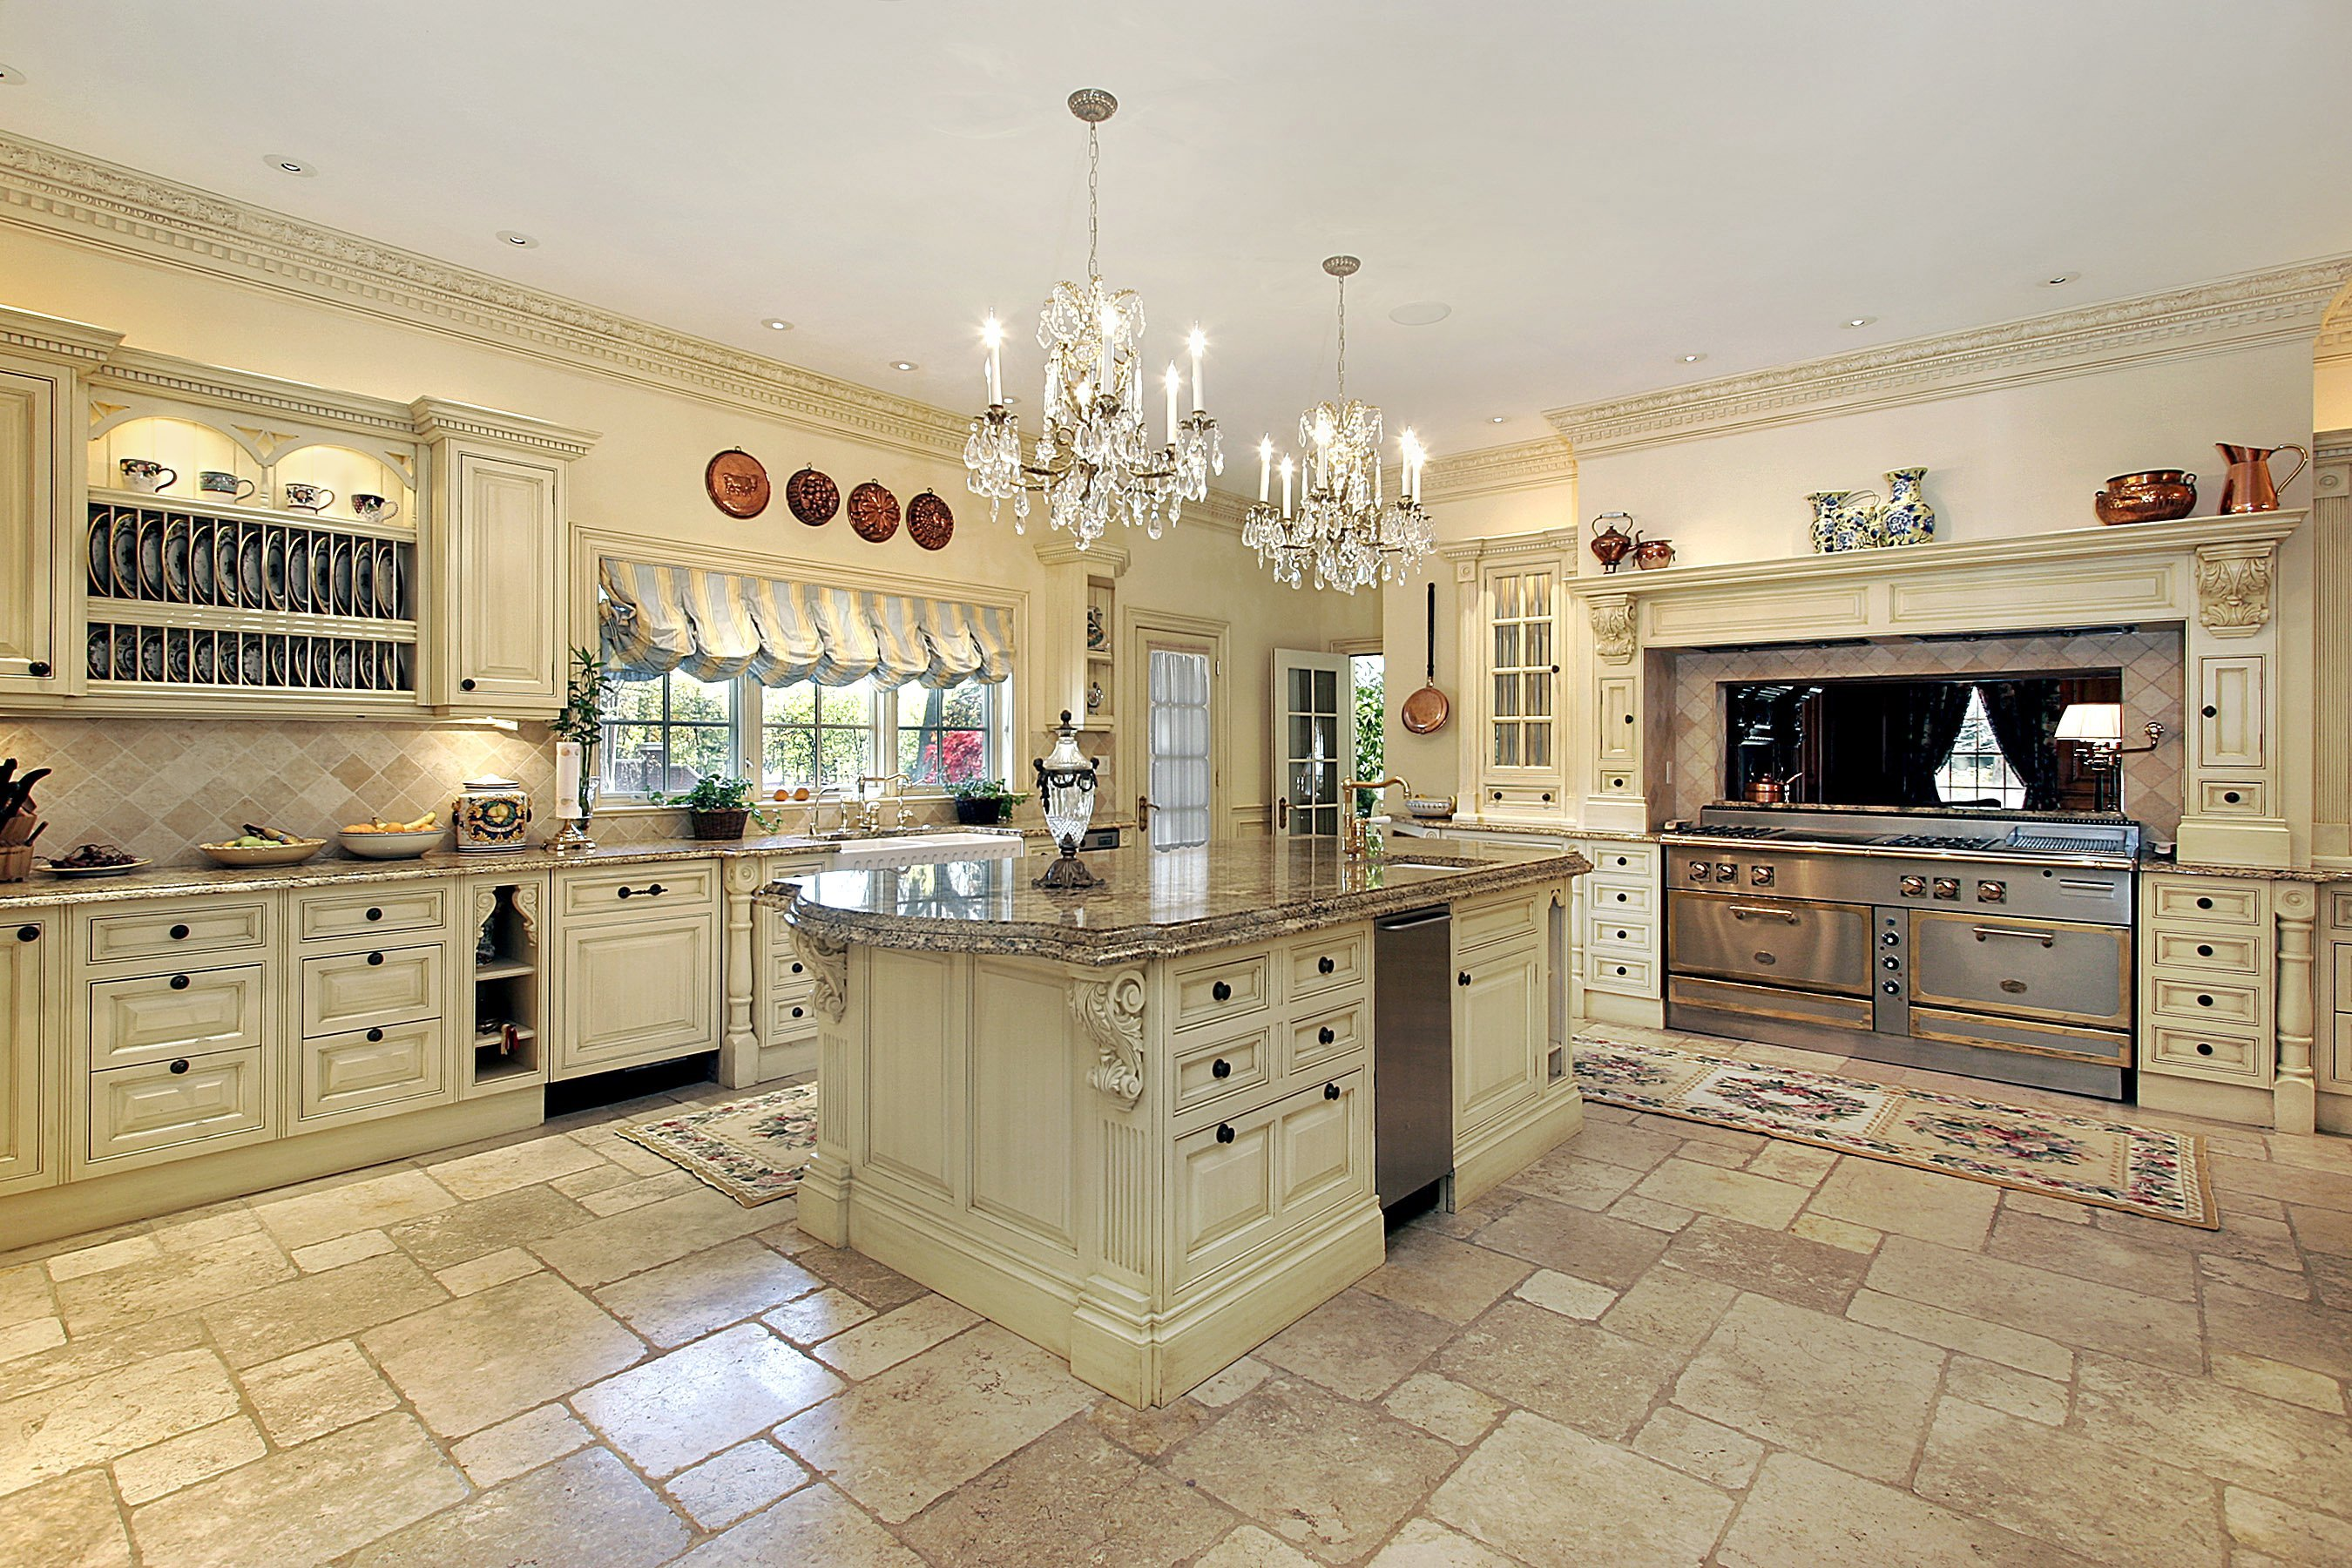 Staged luxury home kitchen